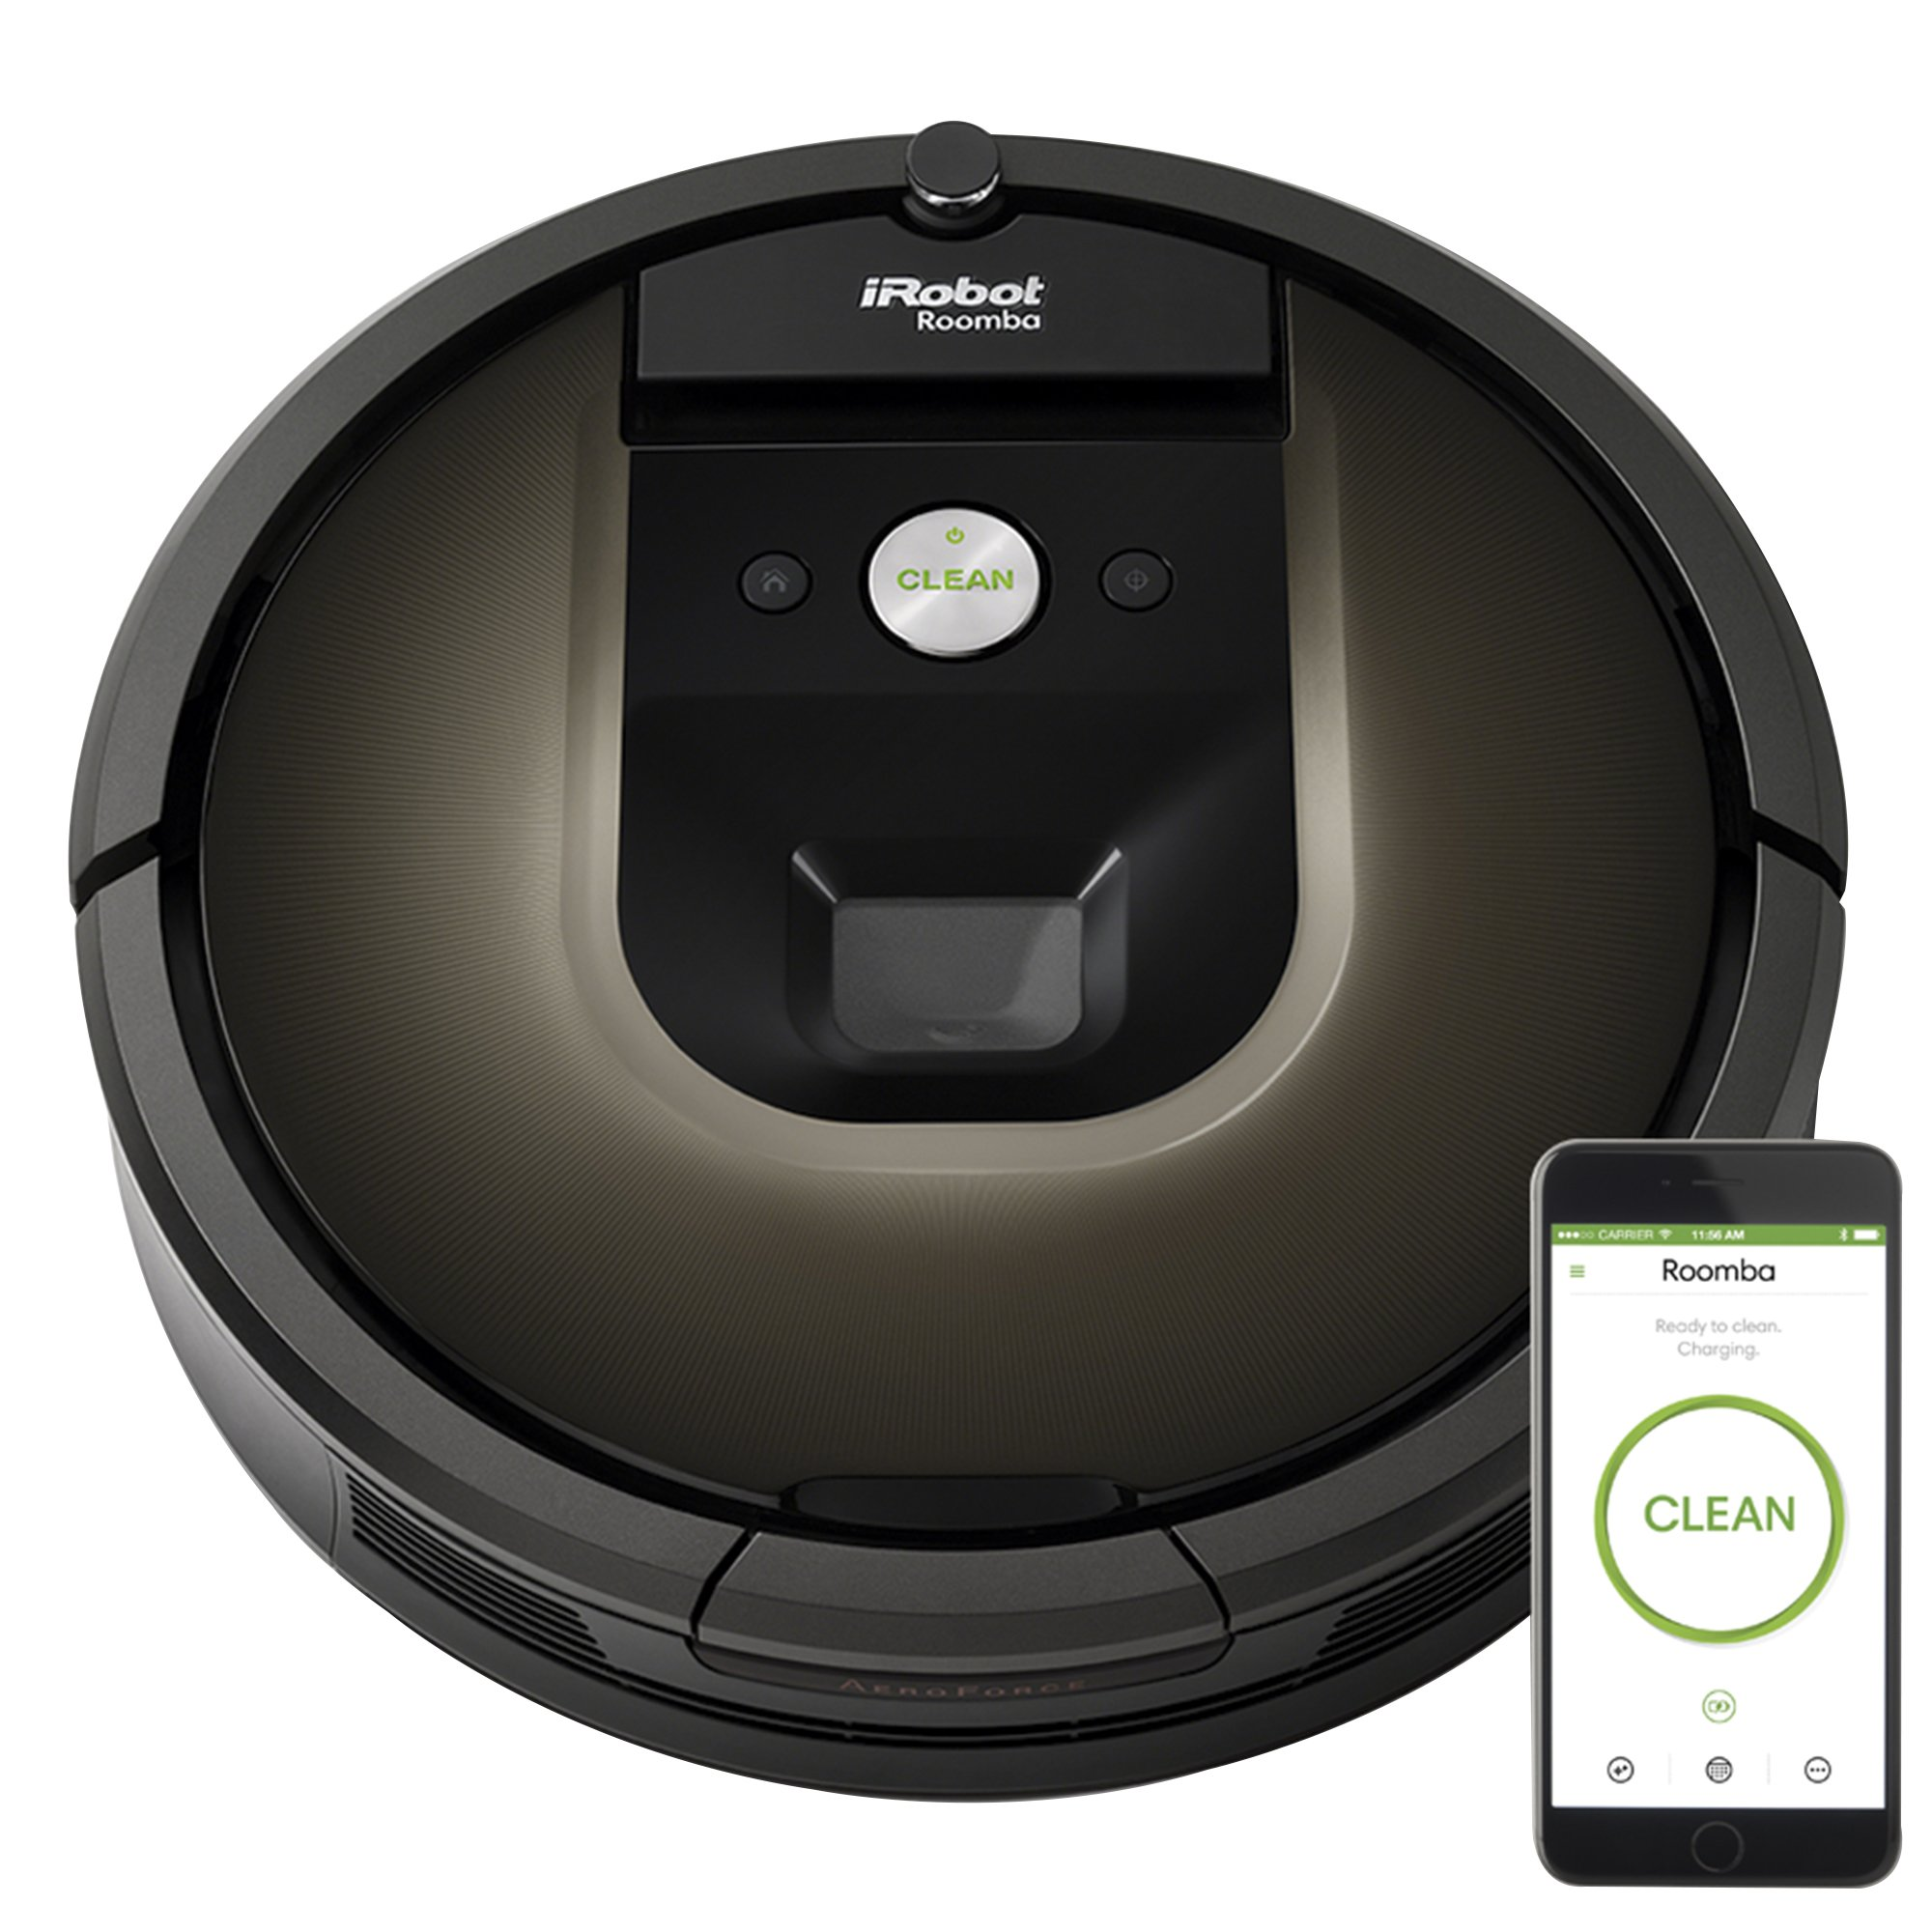 iRobot Roomba 980 Robot Vacuum with Wi-Fi Connectivity by iRobot